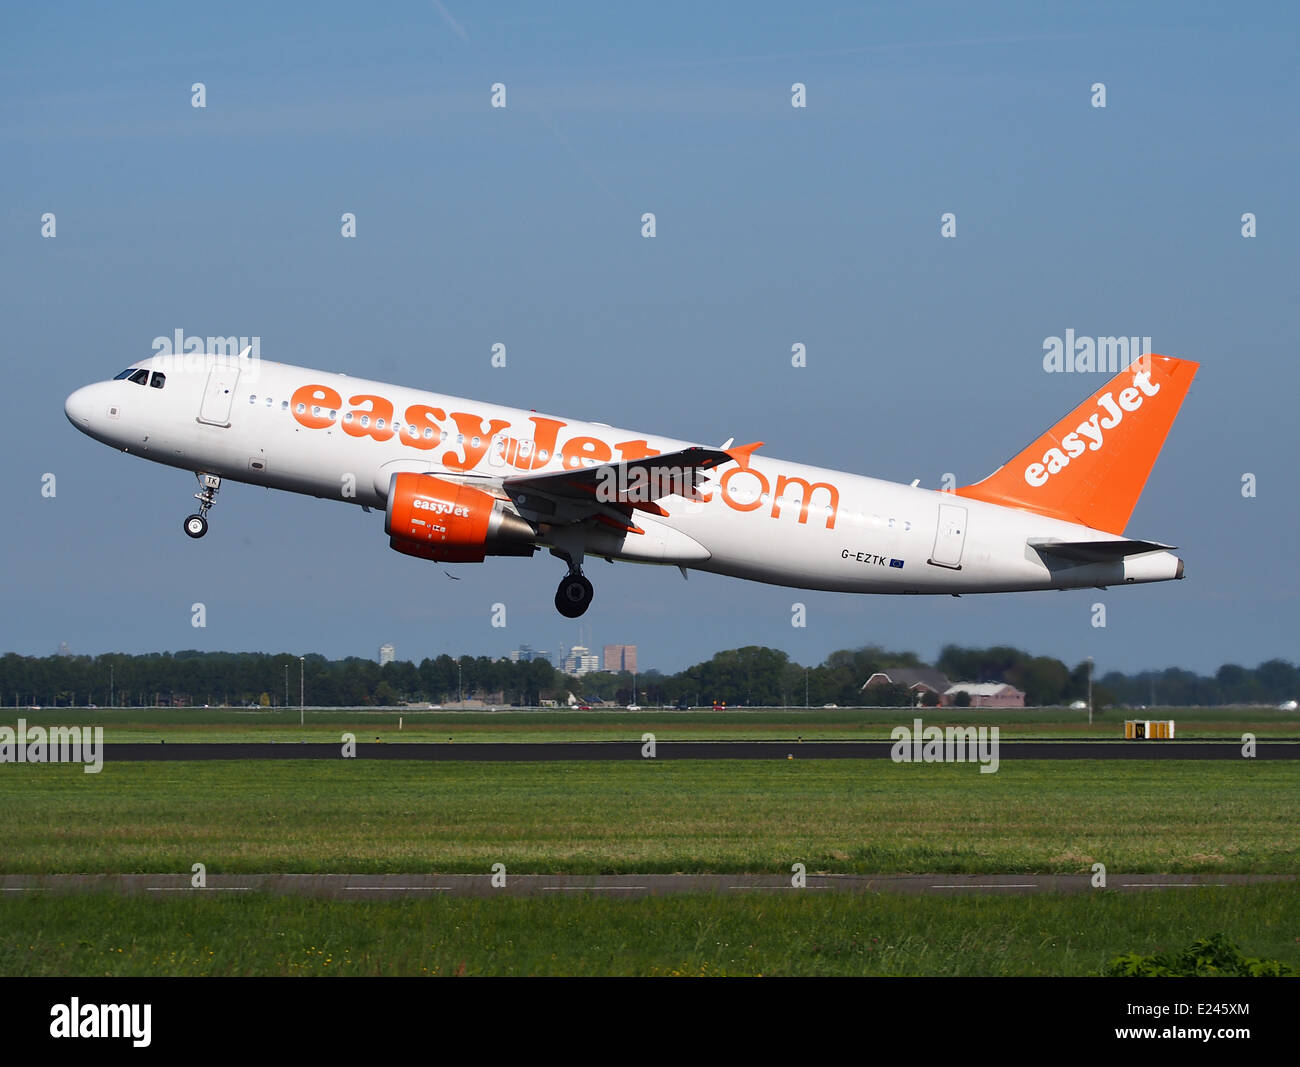 G-EZTK easyJet Airbus A320-214 - cn 3991 takeoff from Schiphol (AMS - EHAM), The Netherlands, 16may2014, pic-2 - Stock Image